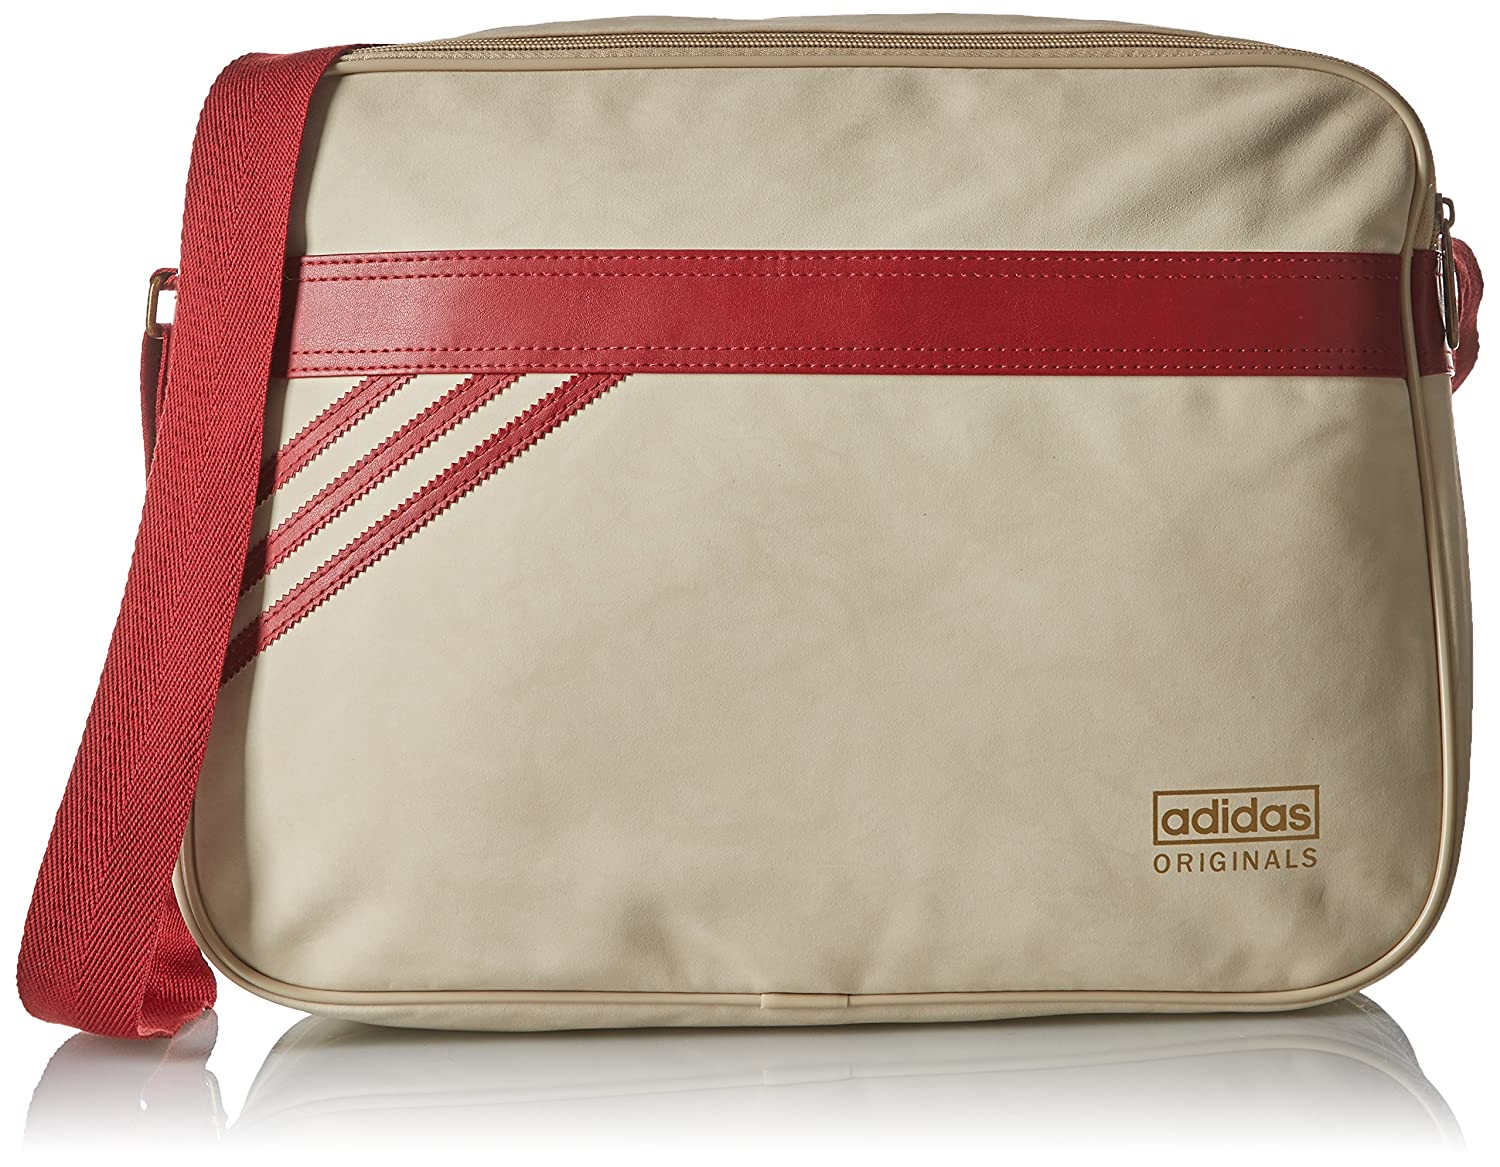 96b3f0d601c65 adidas Airliner Suede Bag